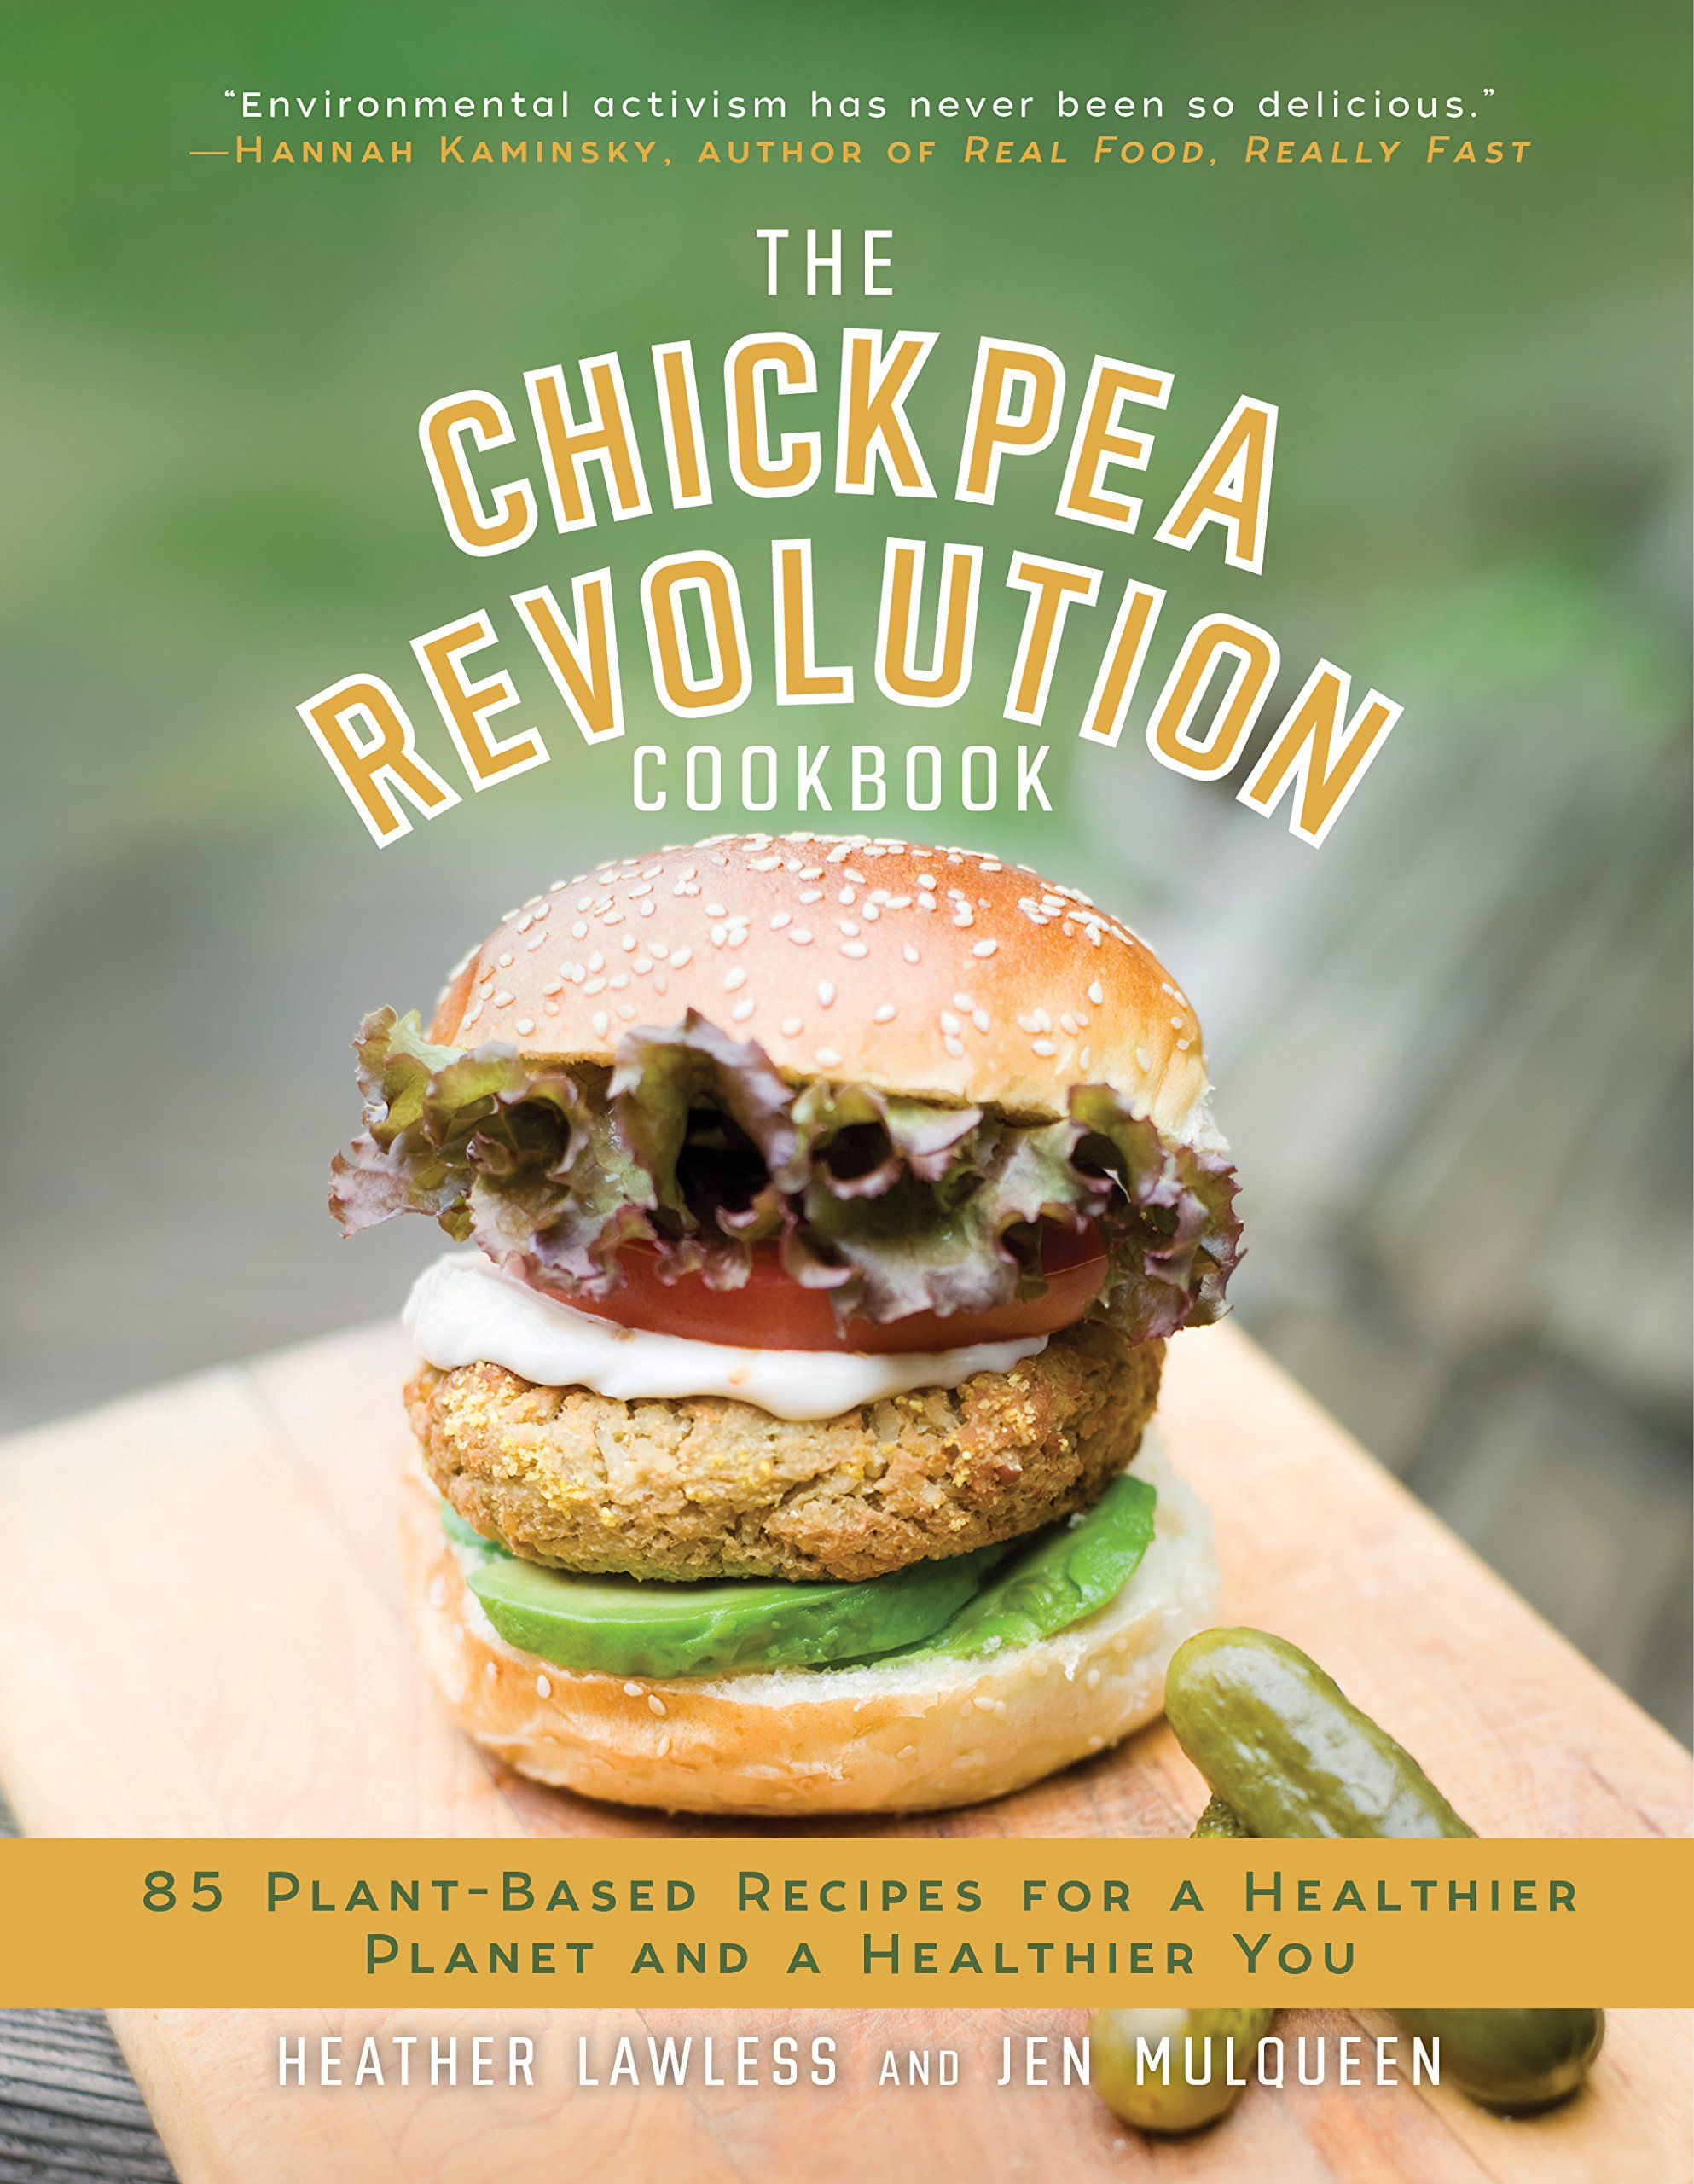 The Chickpea Revolution Cookbook: 85 Plant-Based Recipes for a Healthier You and a Healthier Planet: Amazon.es: Heather Lawless, Jen Mulqueen: Libros en ...